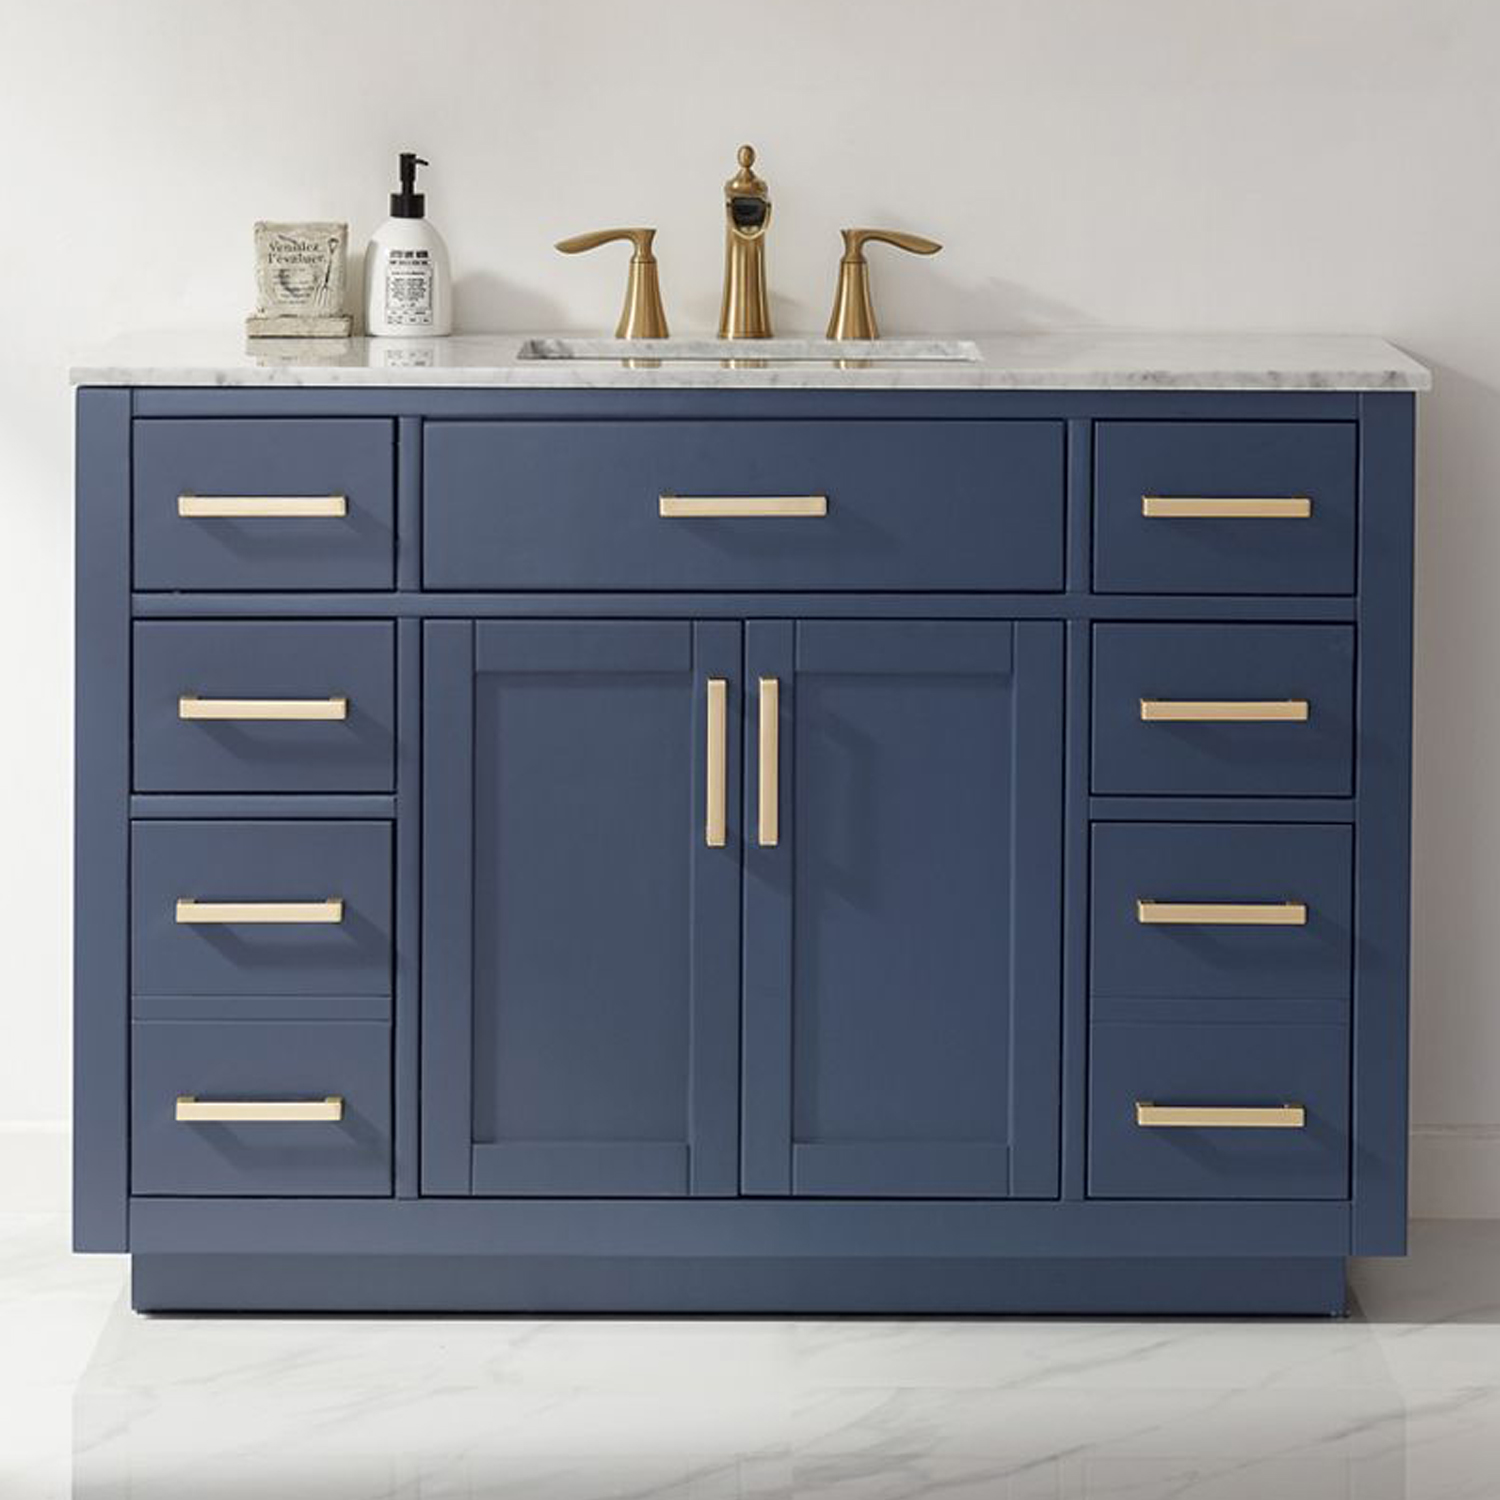 "Issac Edwards Collection 48"" Single Bathroom Vanity Set in Royal Blue and Carrara White Marble Countertop"